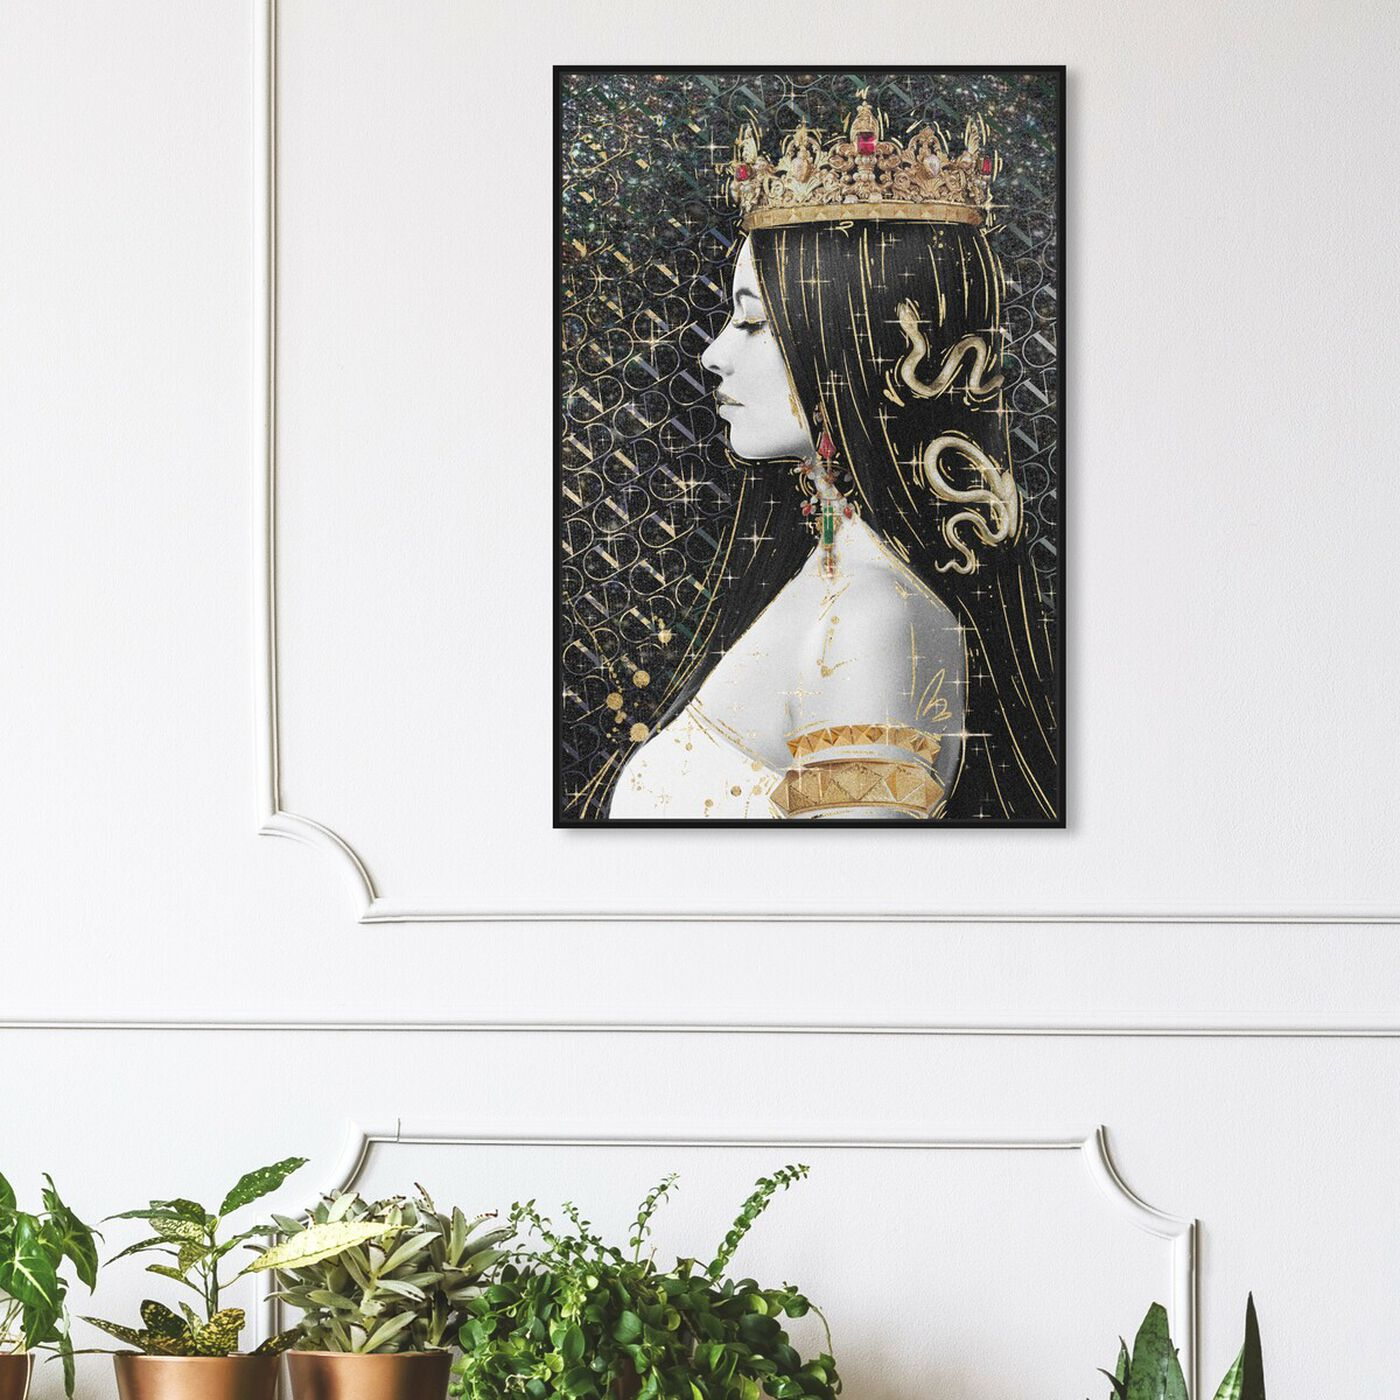 Hanging view of Crown and Young featuring fashion and glam and jewelry art.